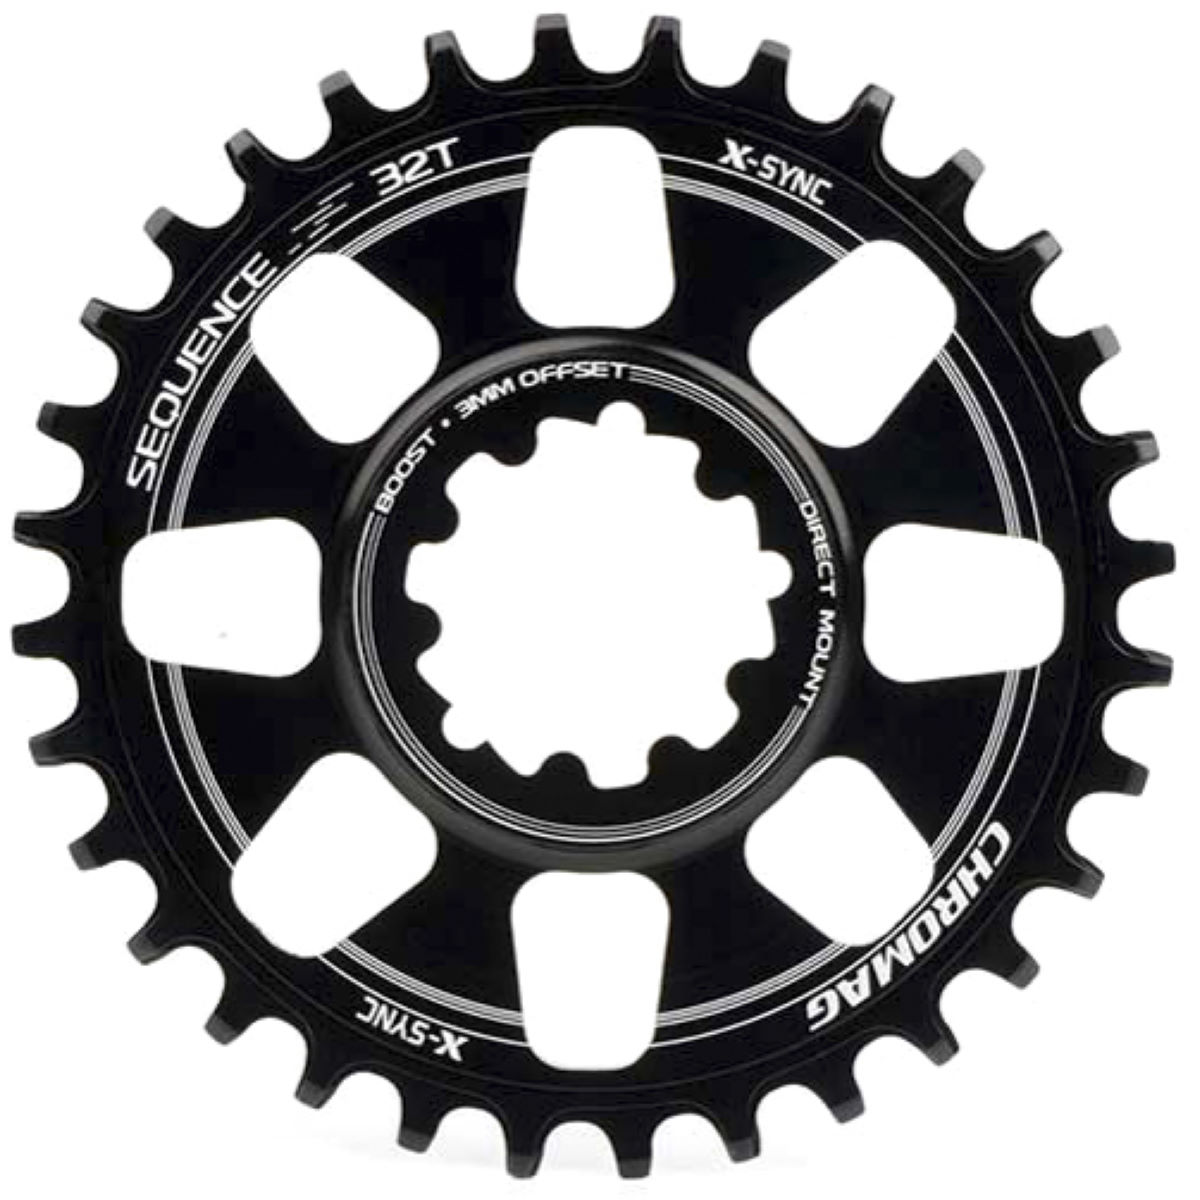 Pédalier Chromag Sequence DM Boost - 28t 9/10/11 Speed Noir Plateaux